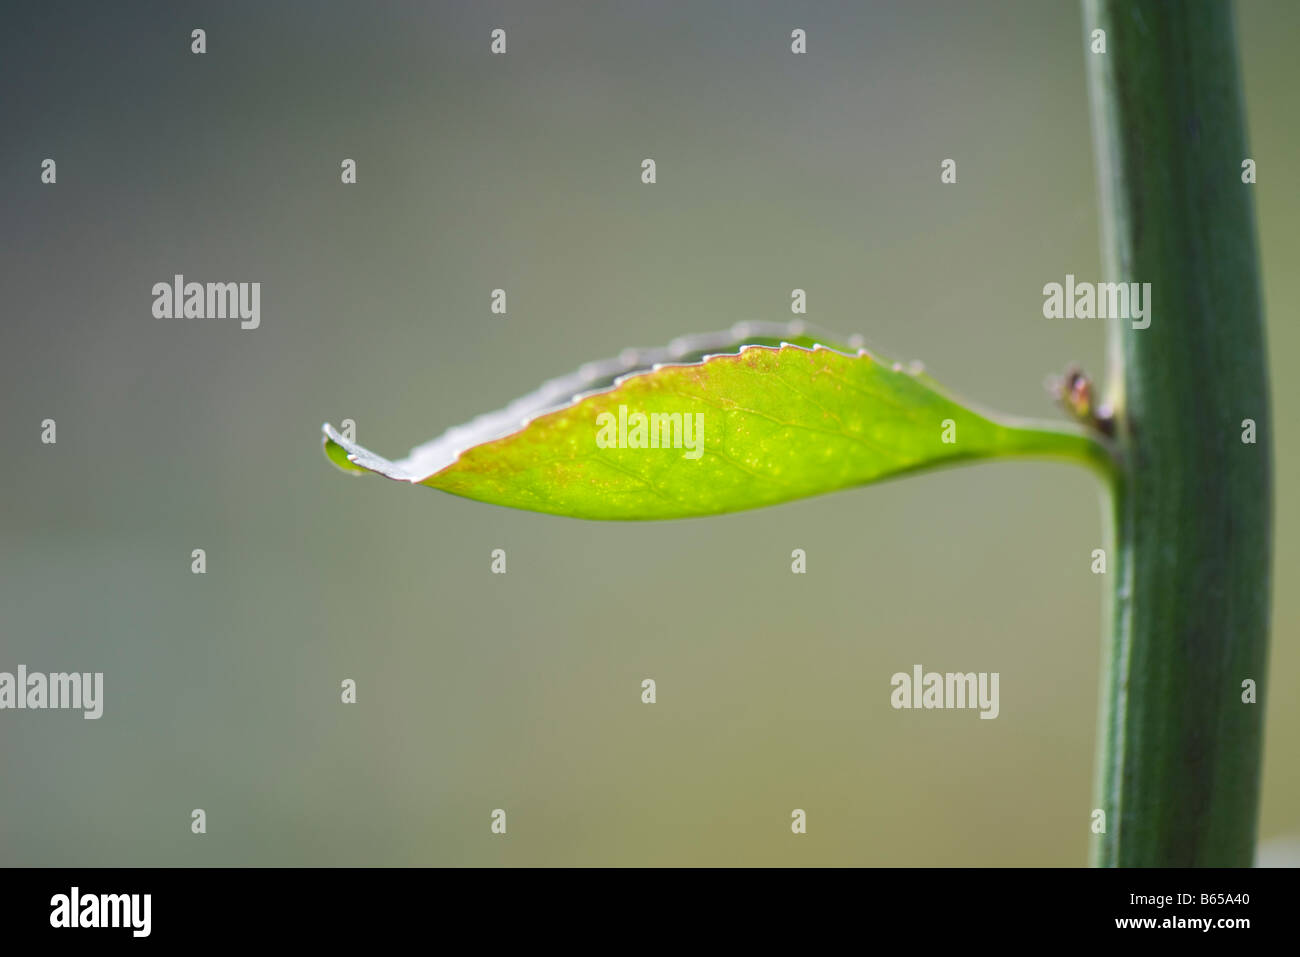 New leaf growing on stem, close-up - Stock Image